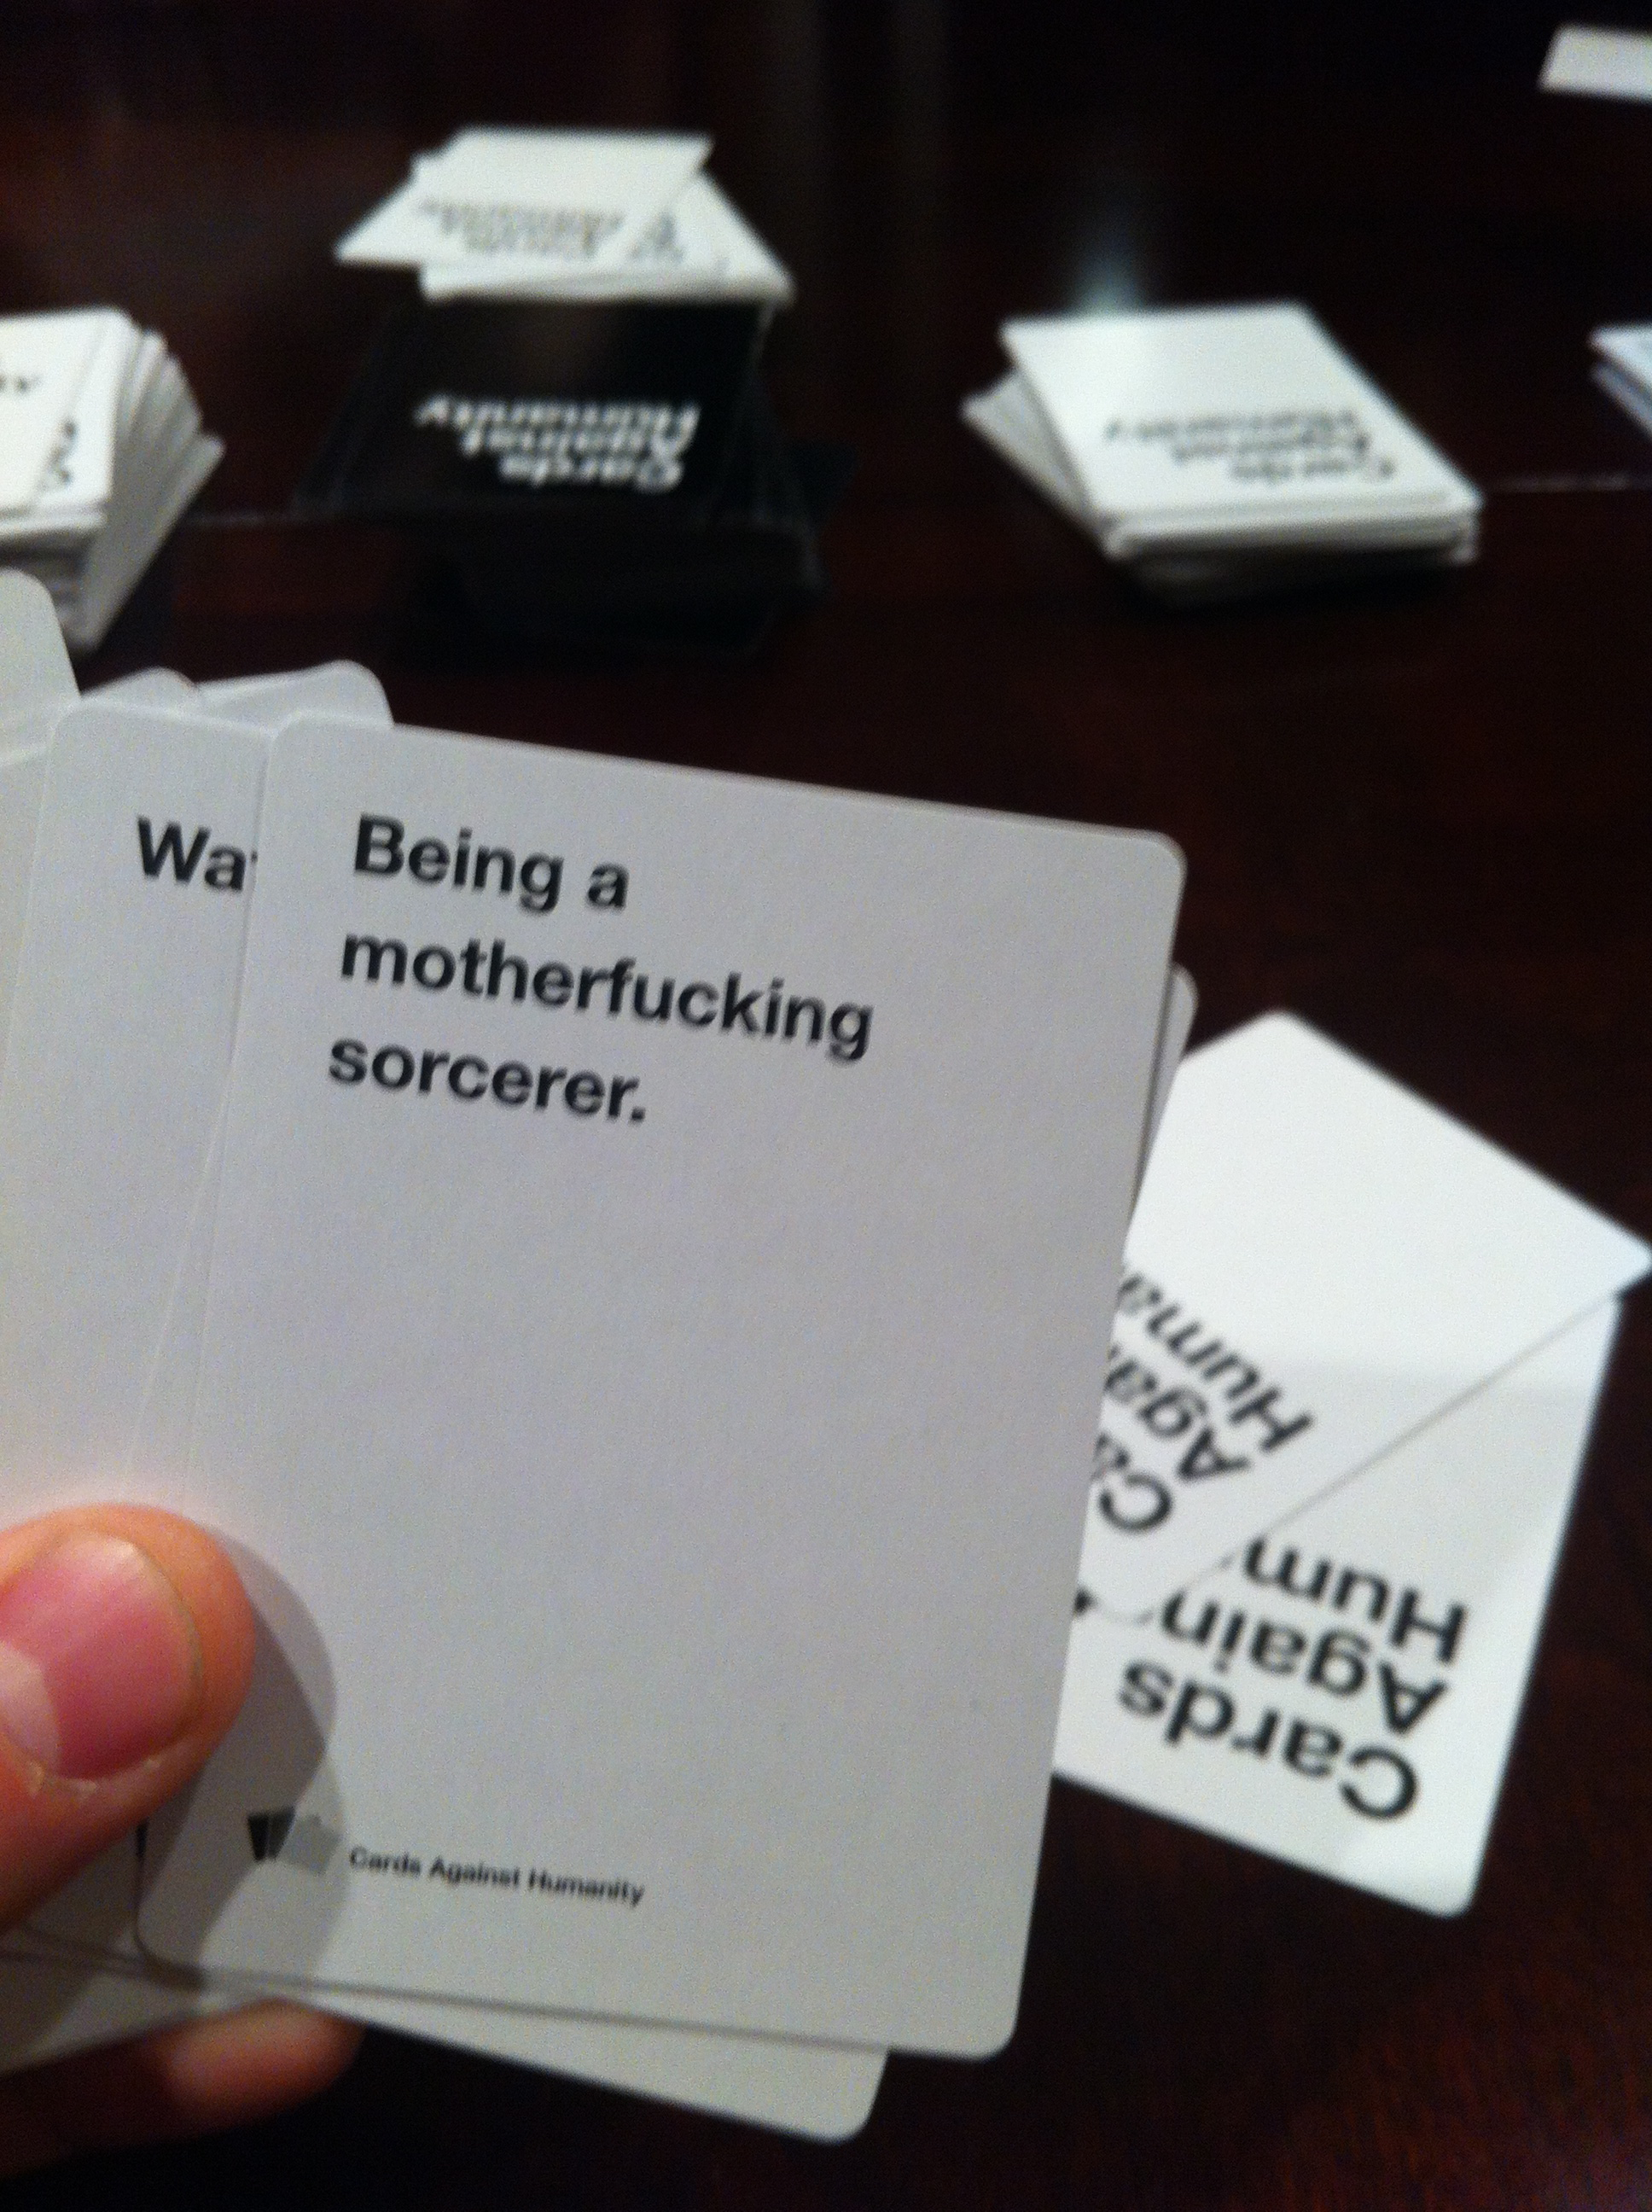 Cards Against Humanity - Being a motherfucking sorcerer